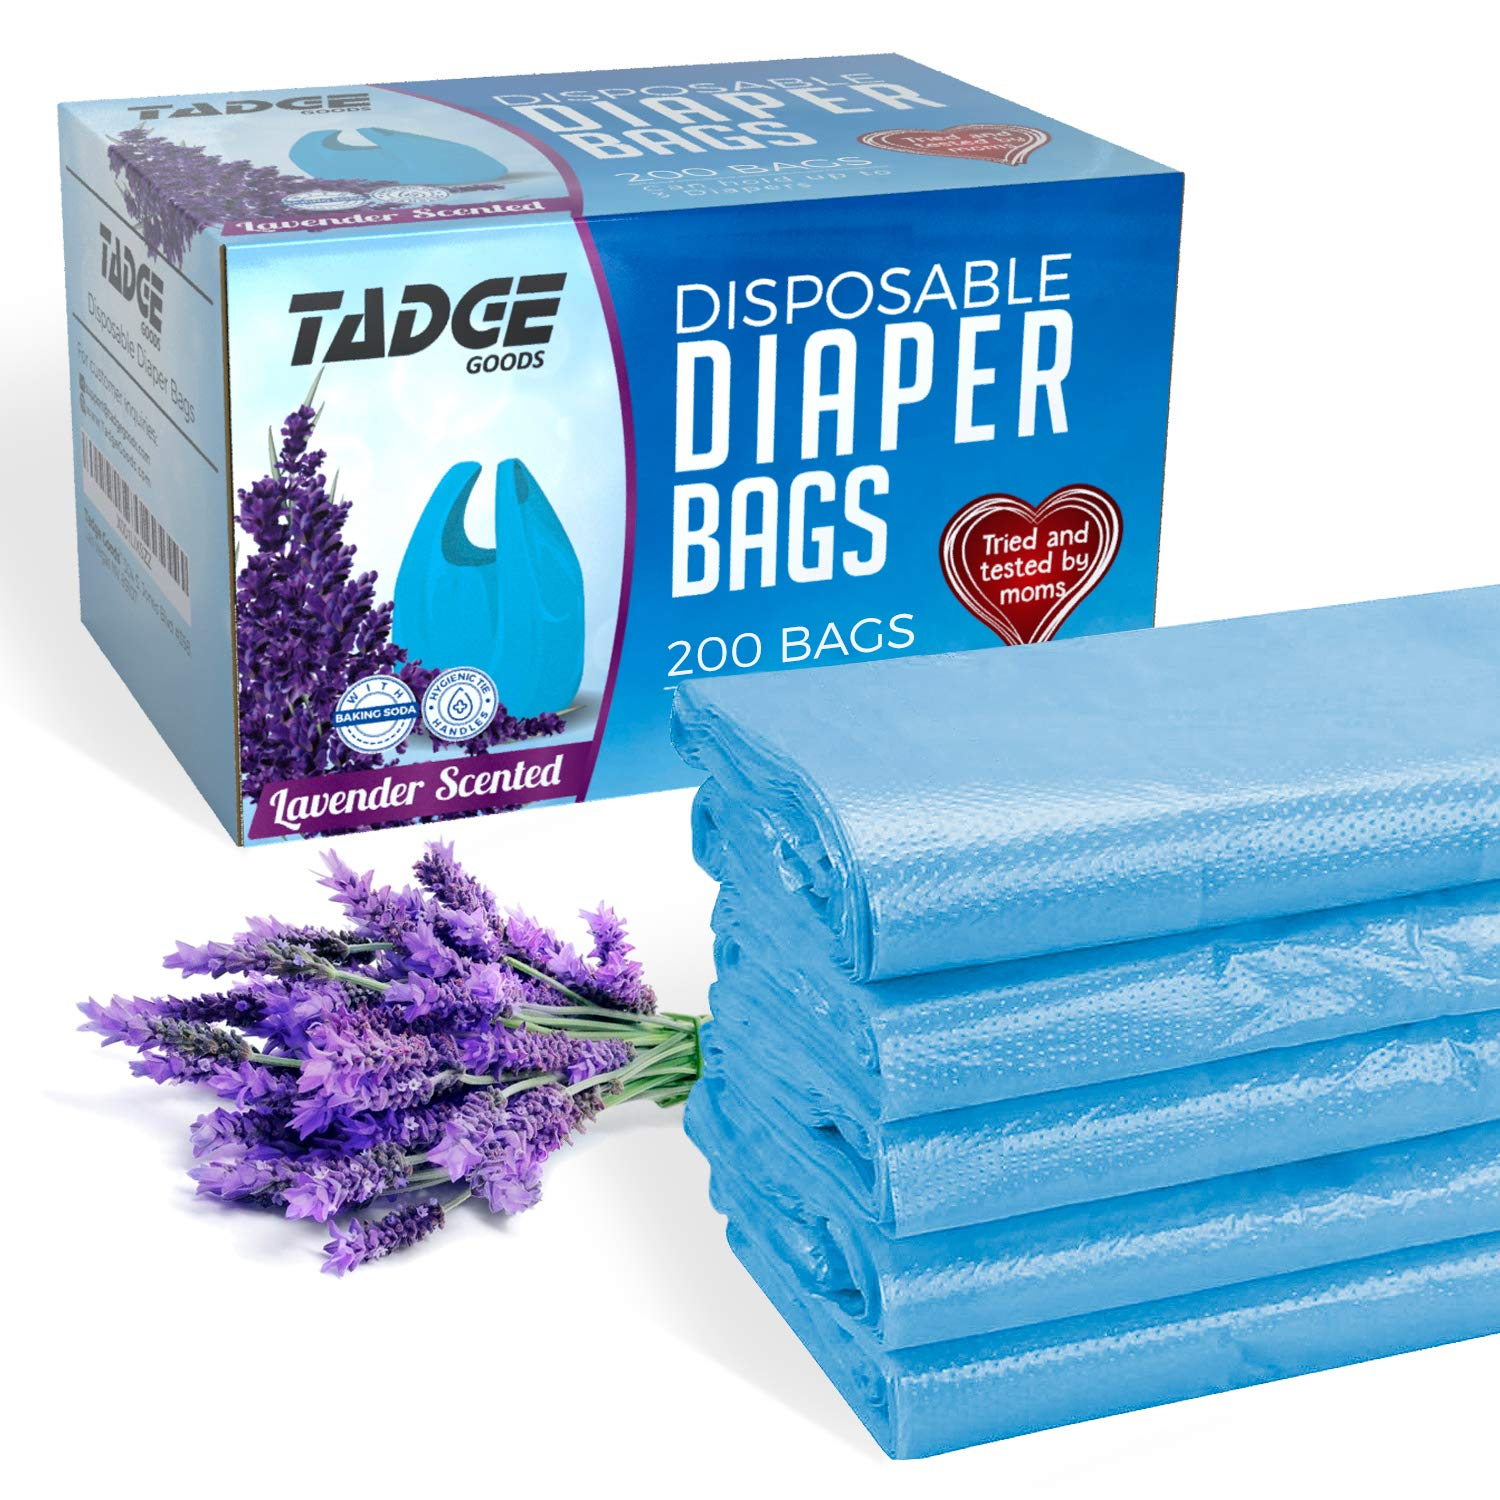 Tadge Goods Baby Disposable Diaper Bags – Biodegradable Diaper Sacks with Lavender Scent & Added Baking Soda to Absorb…